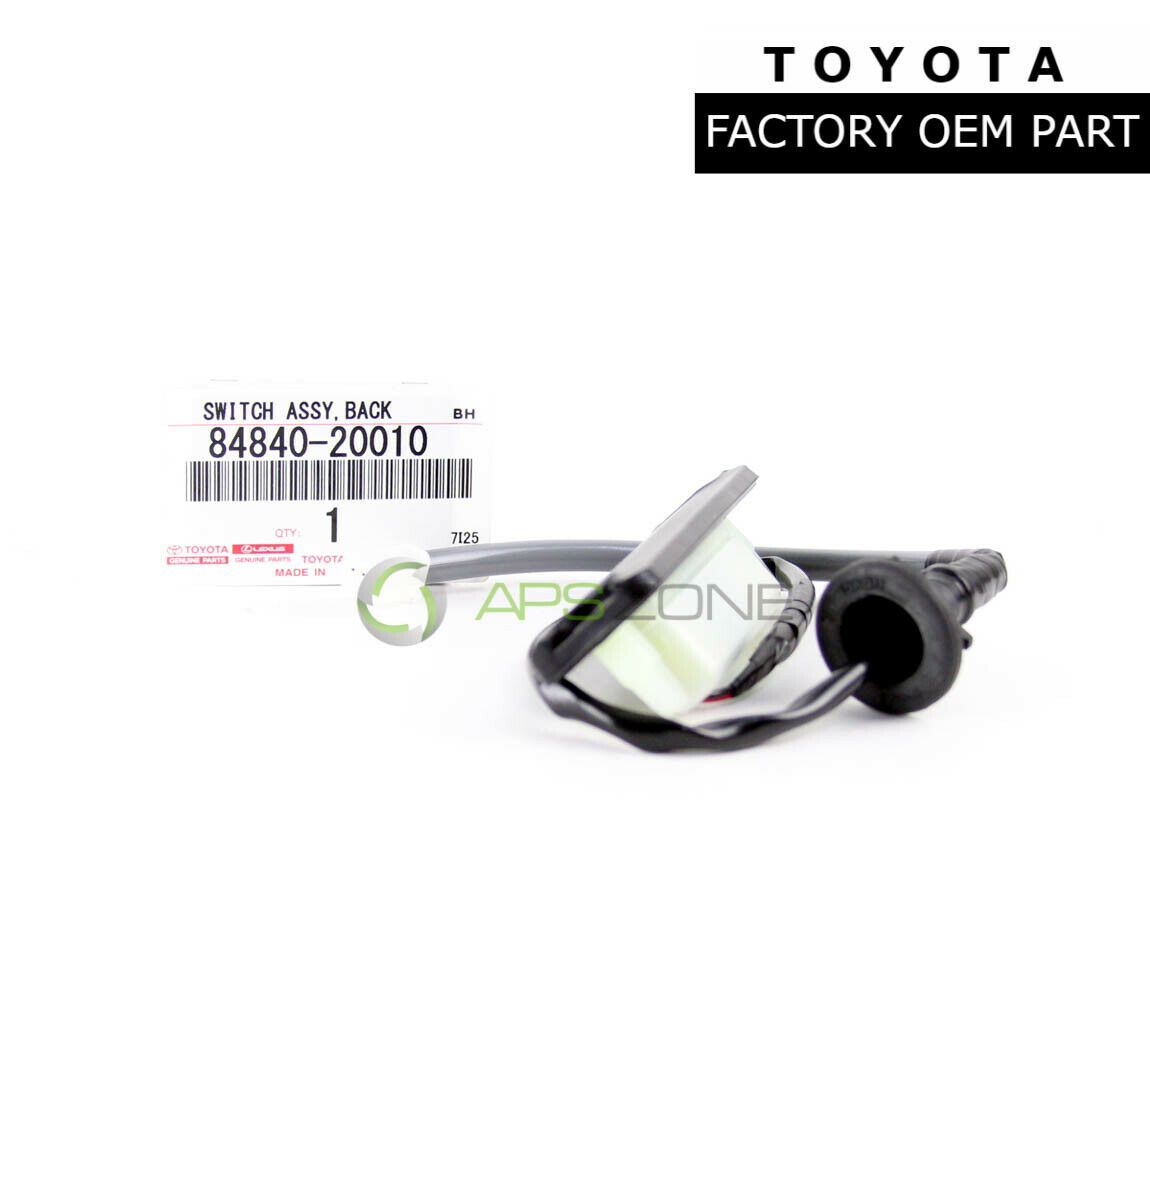 Genuine Toyota Camry Rear Trunk Lid Switch